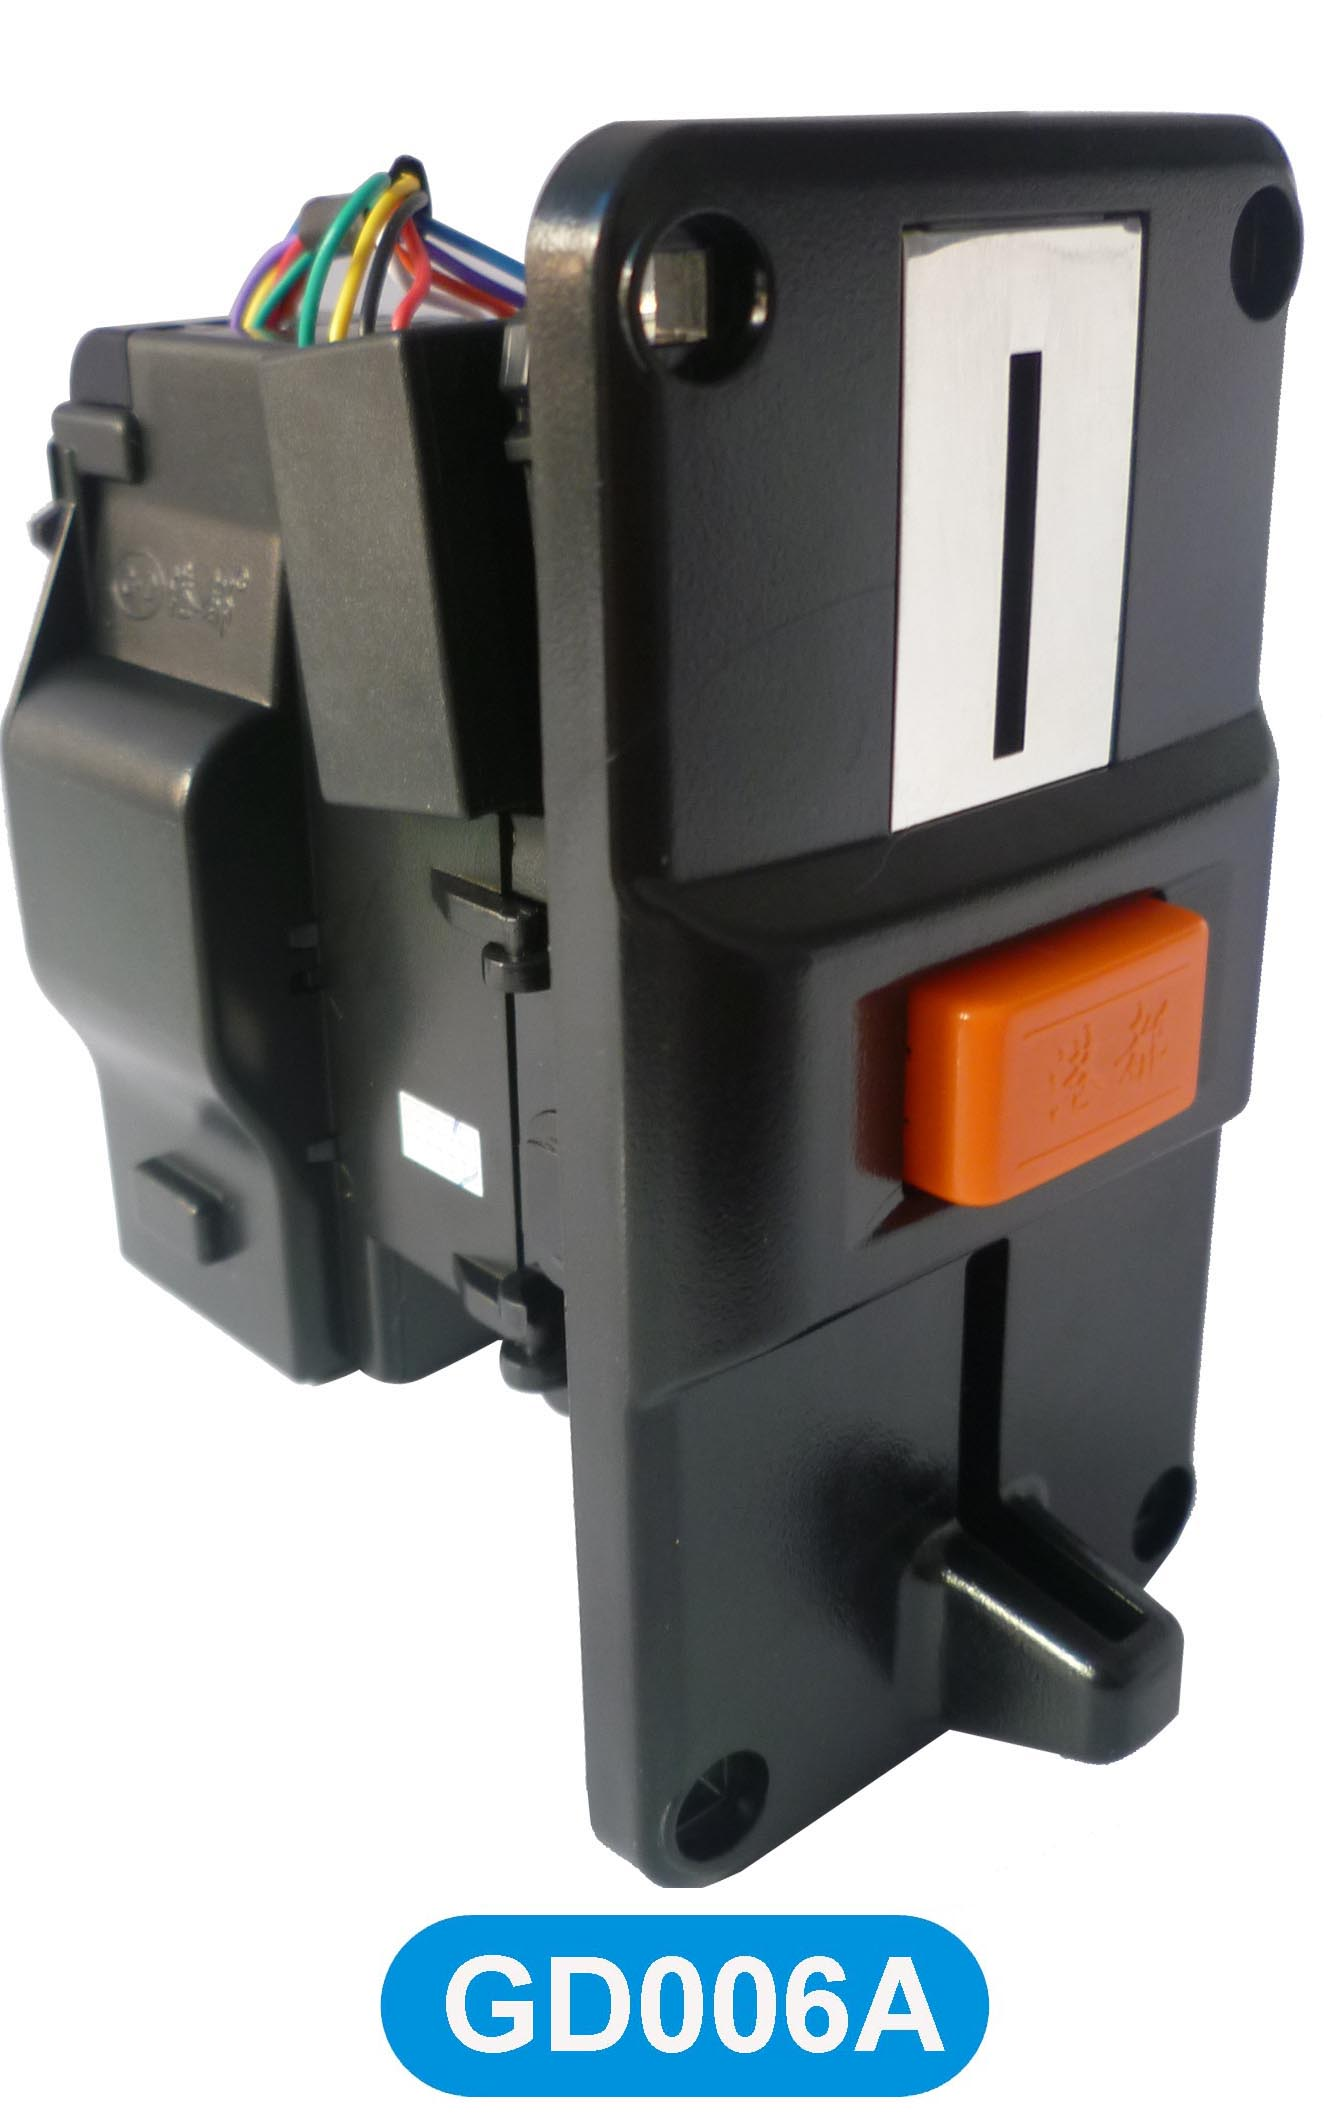 GD006A GD Intelligent coin acceptor  ,coin selector validators